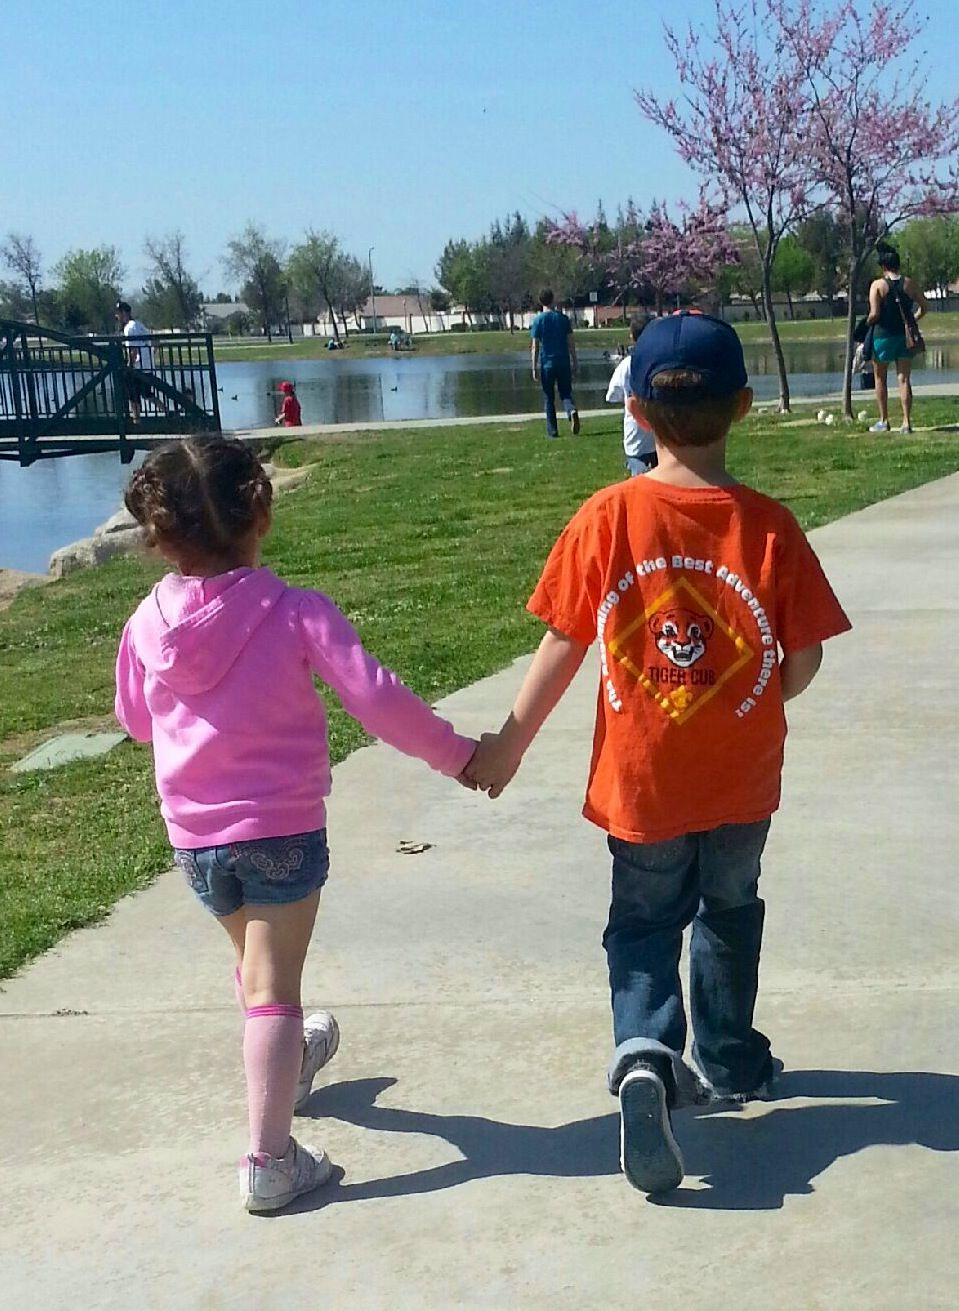 Cub Scout with cystic fibrosis holding hand with friend at CF walk